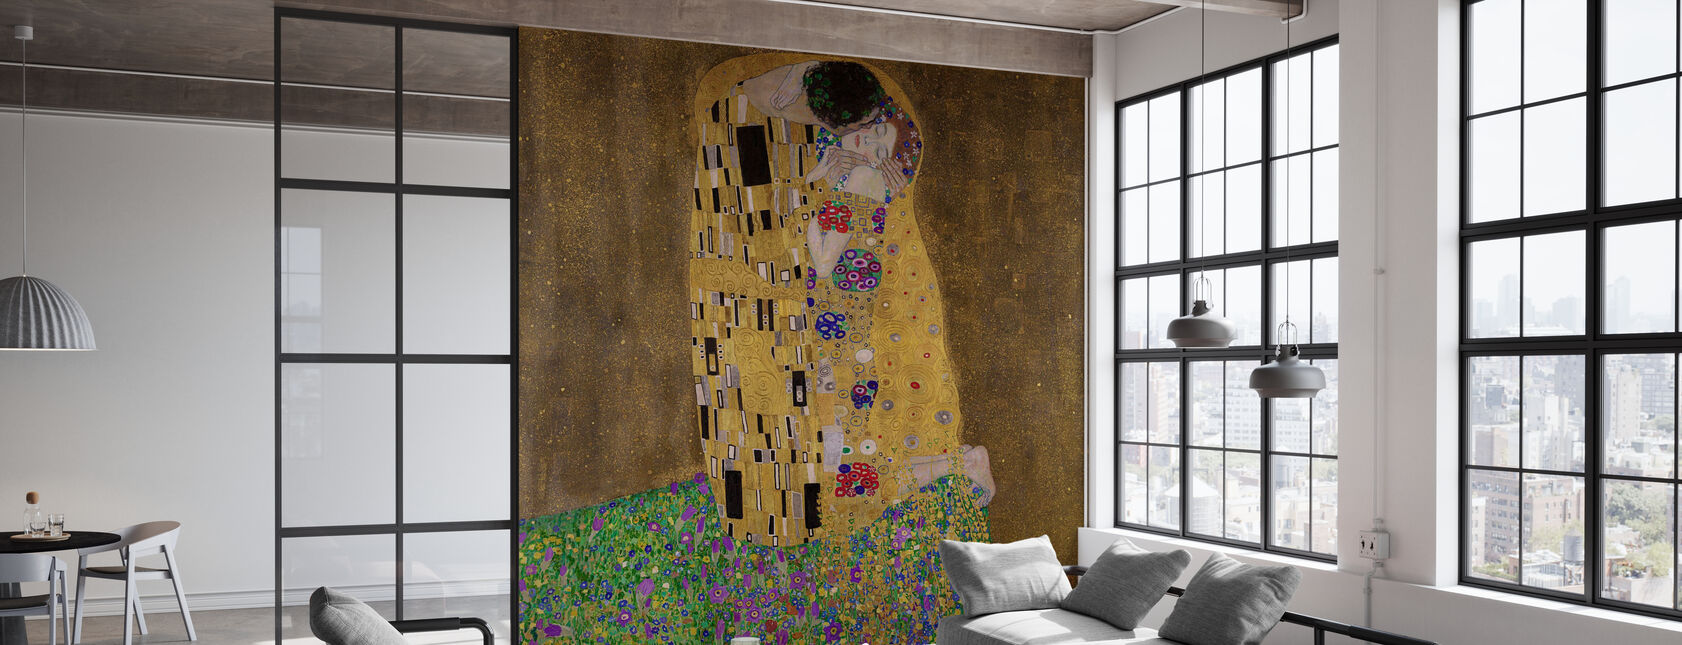 The Kiss, Gustav Klimt - Wallpaper - Office